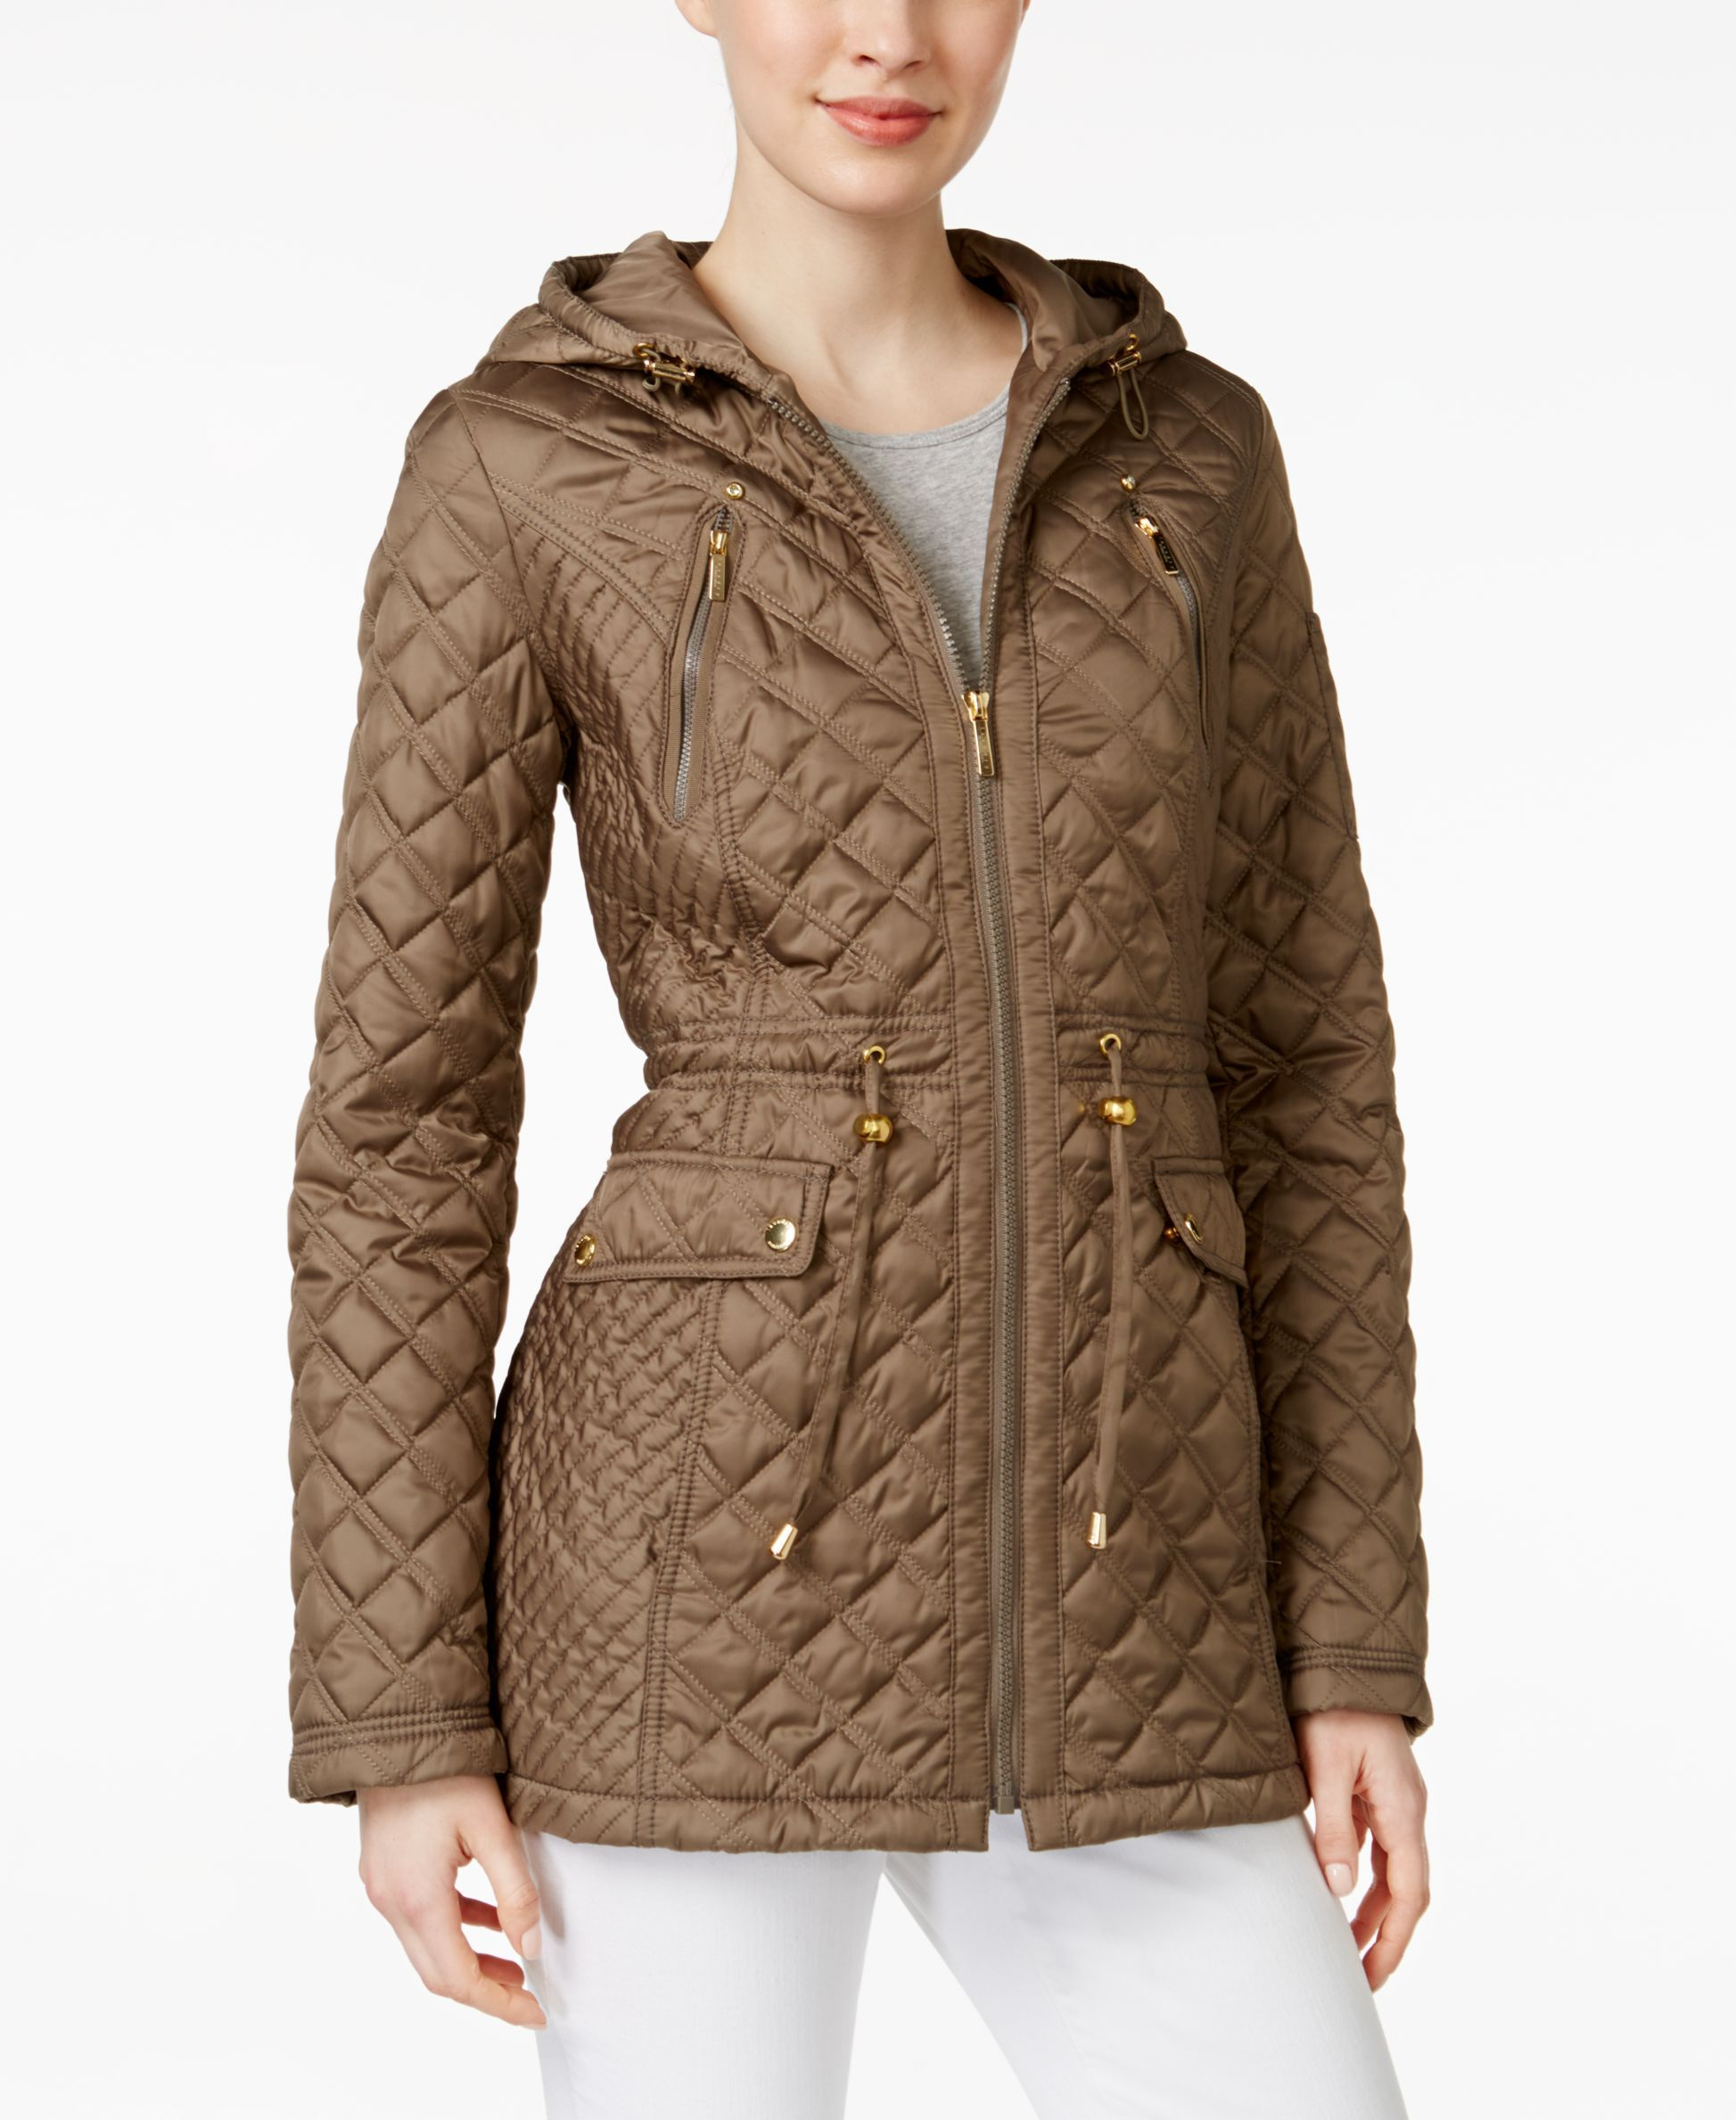 Laundry by Shelli Segal Petite Hooded Quilted Anorak Jacket